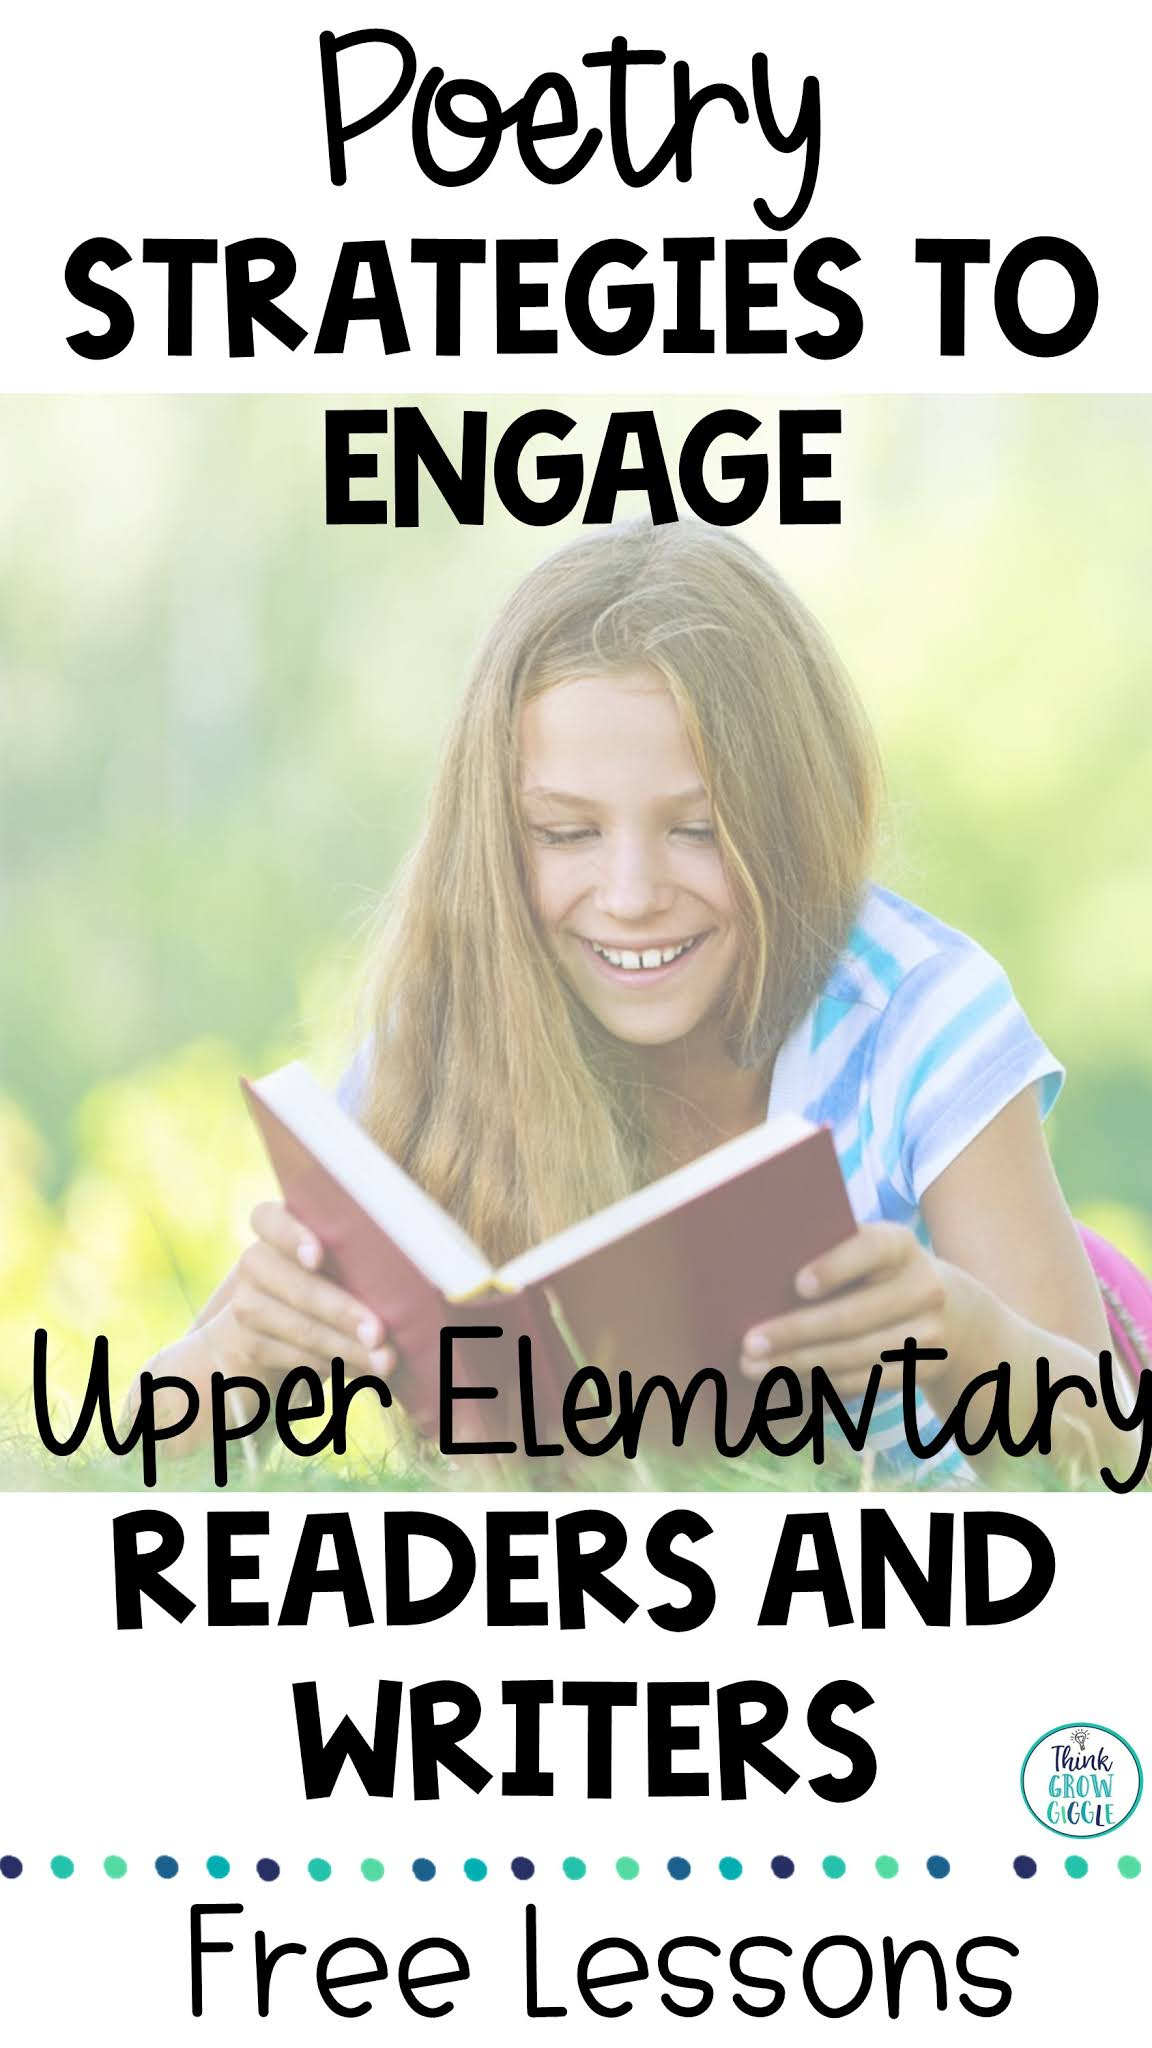 POETRY LESSONS FOR UPPER ELEMENTARY STUDENTS